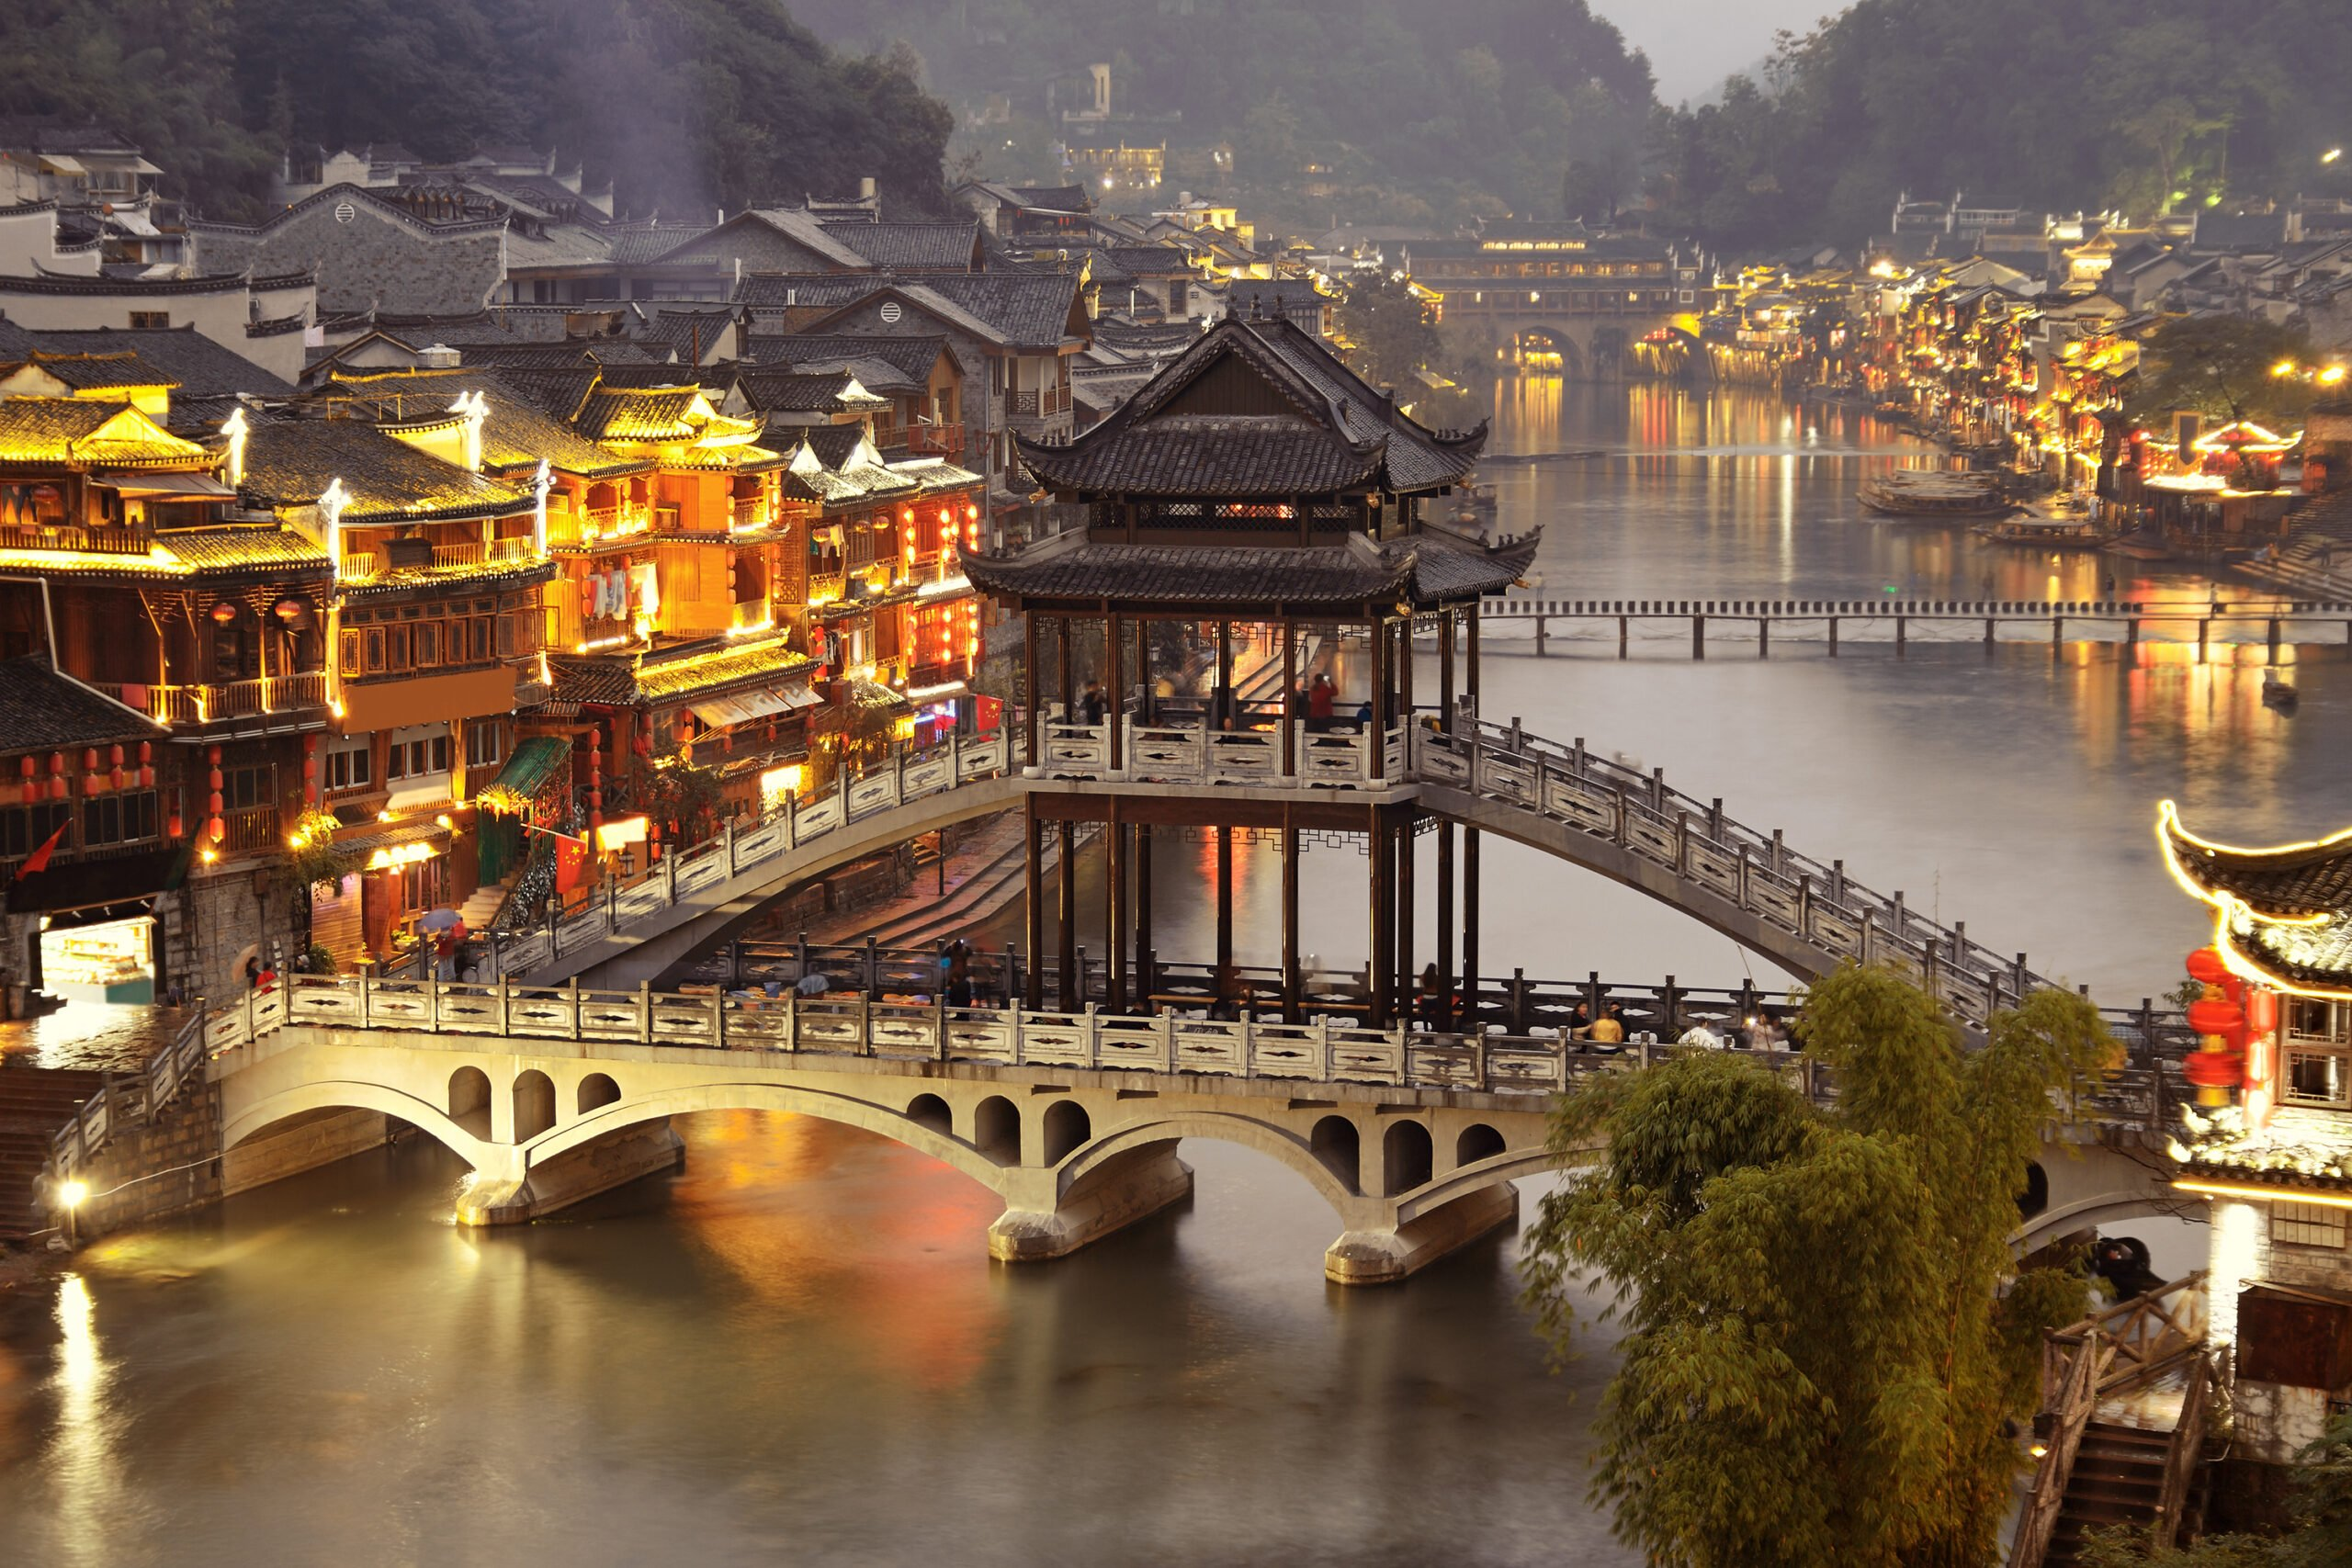 Enjoy The Photogenic Night Scenery Of Fenghuang In Our Zhangjiajie And Fenghuang 4 Day Package Tour